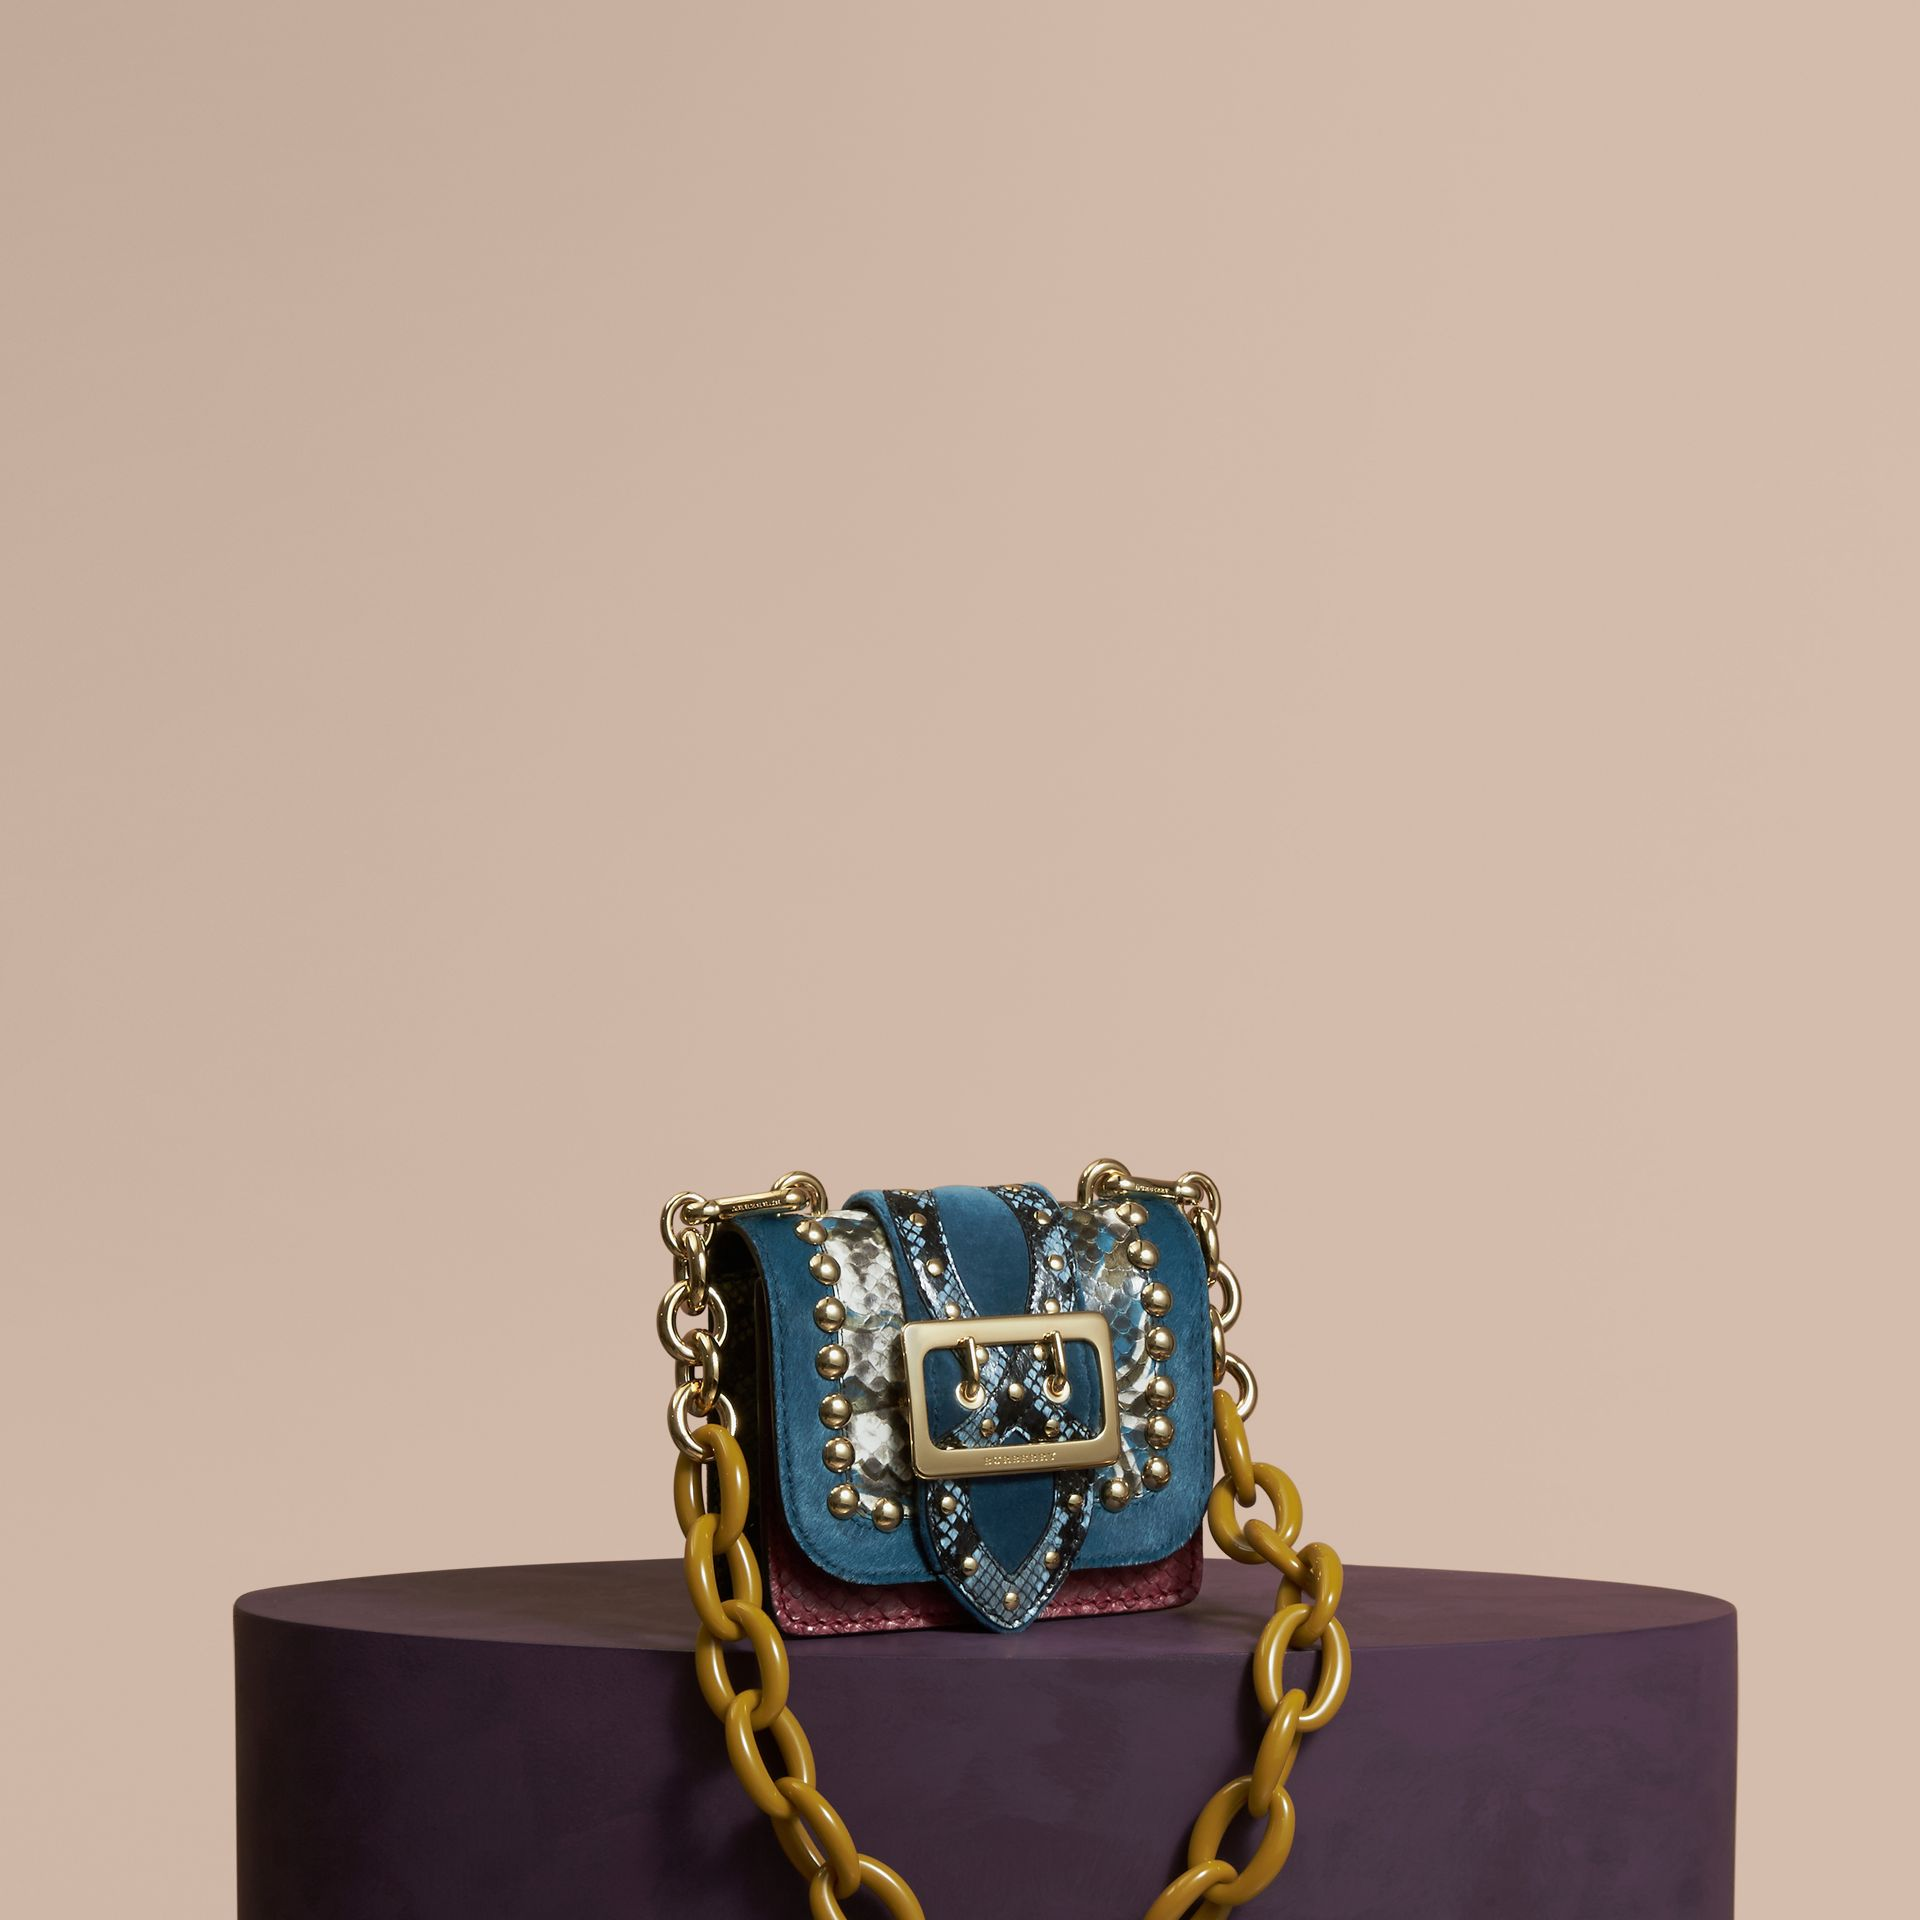 Pale opal The Mini Square Buckle Bag in Calfskin, Snakeskin and Velvet Pale Opal - gallery image 1